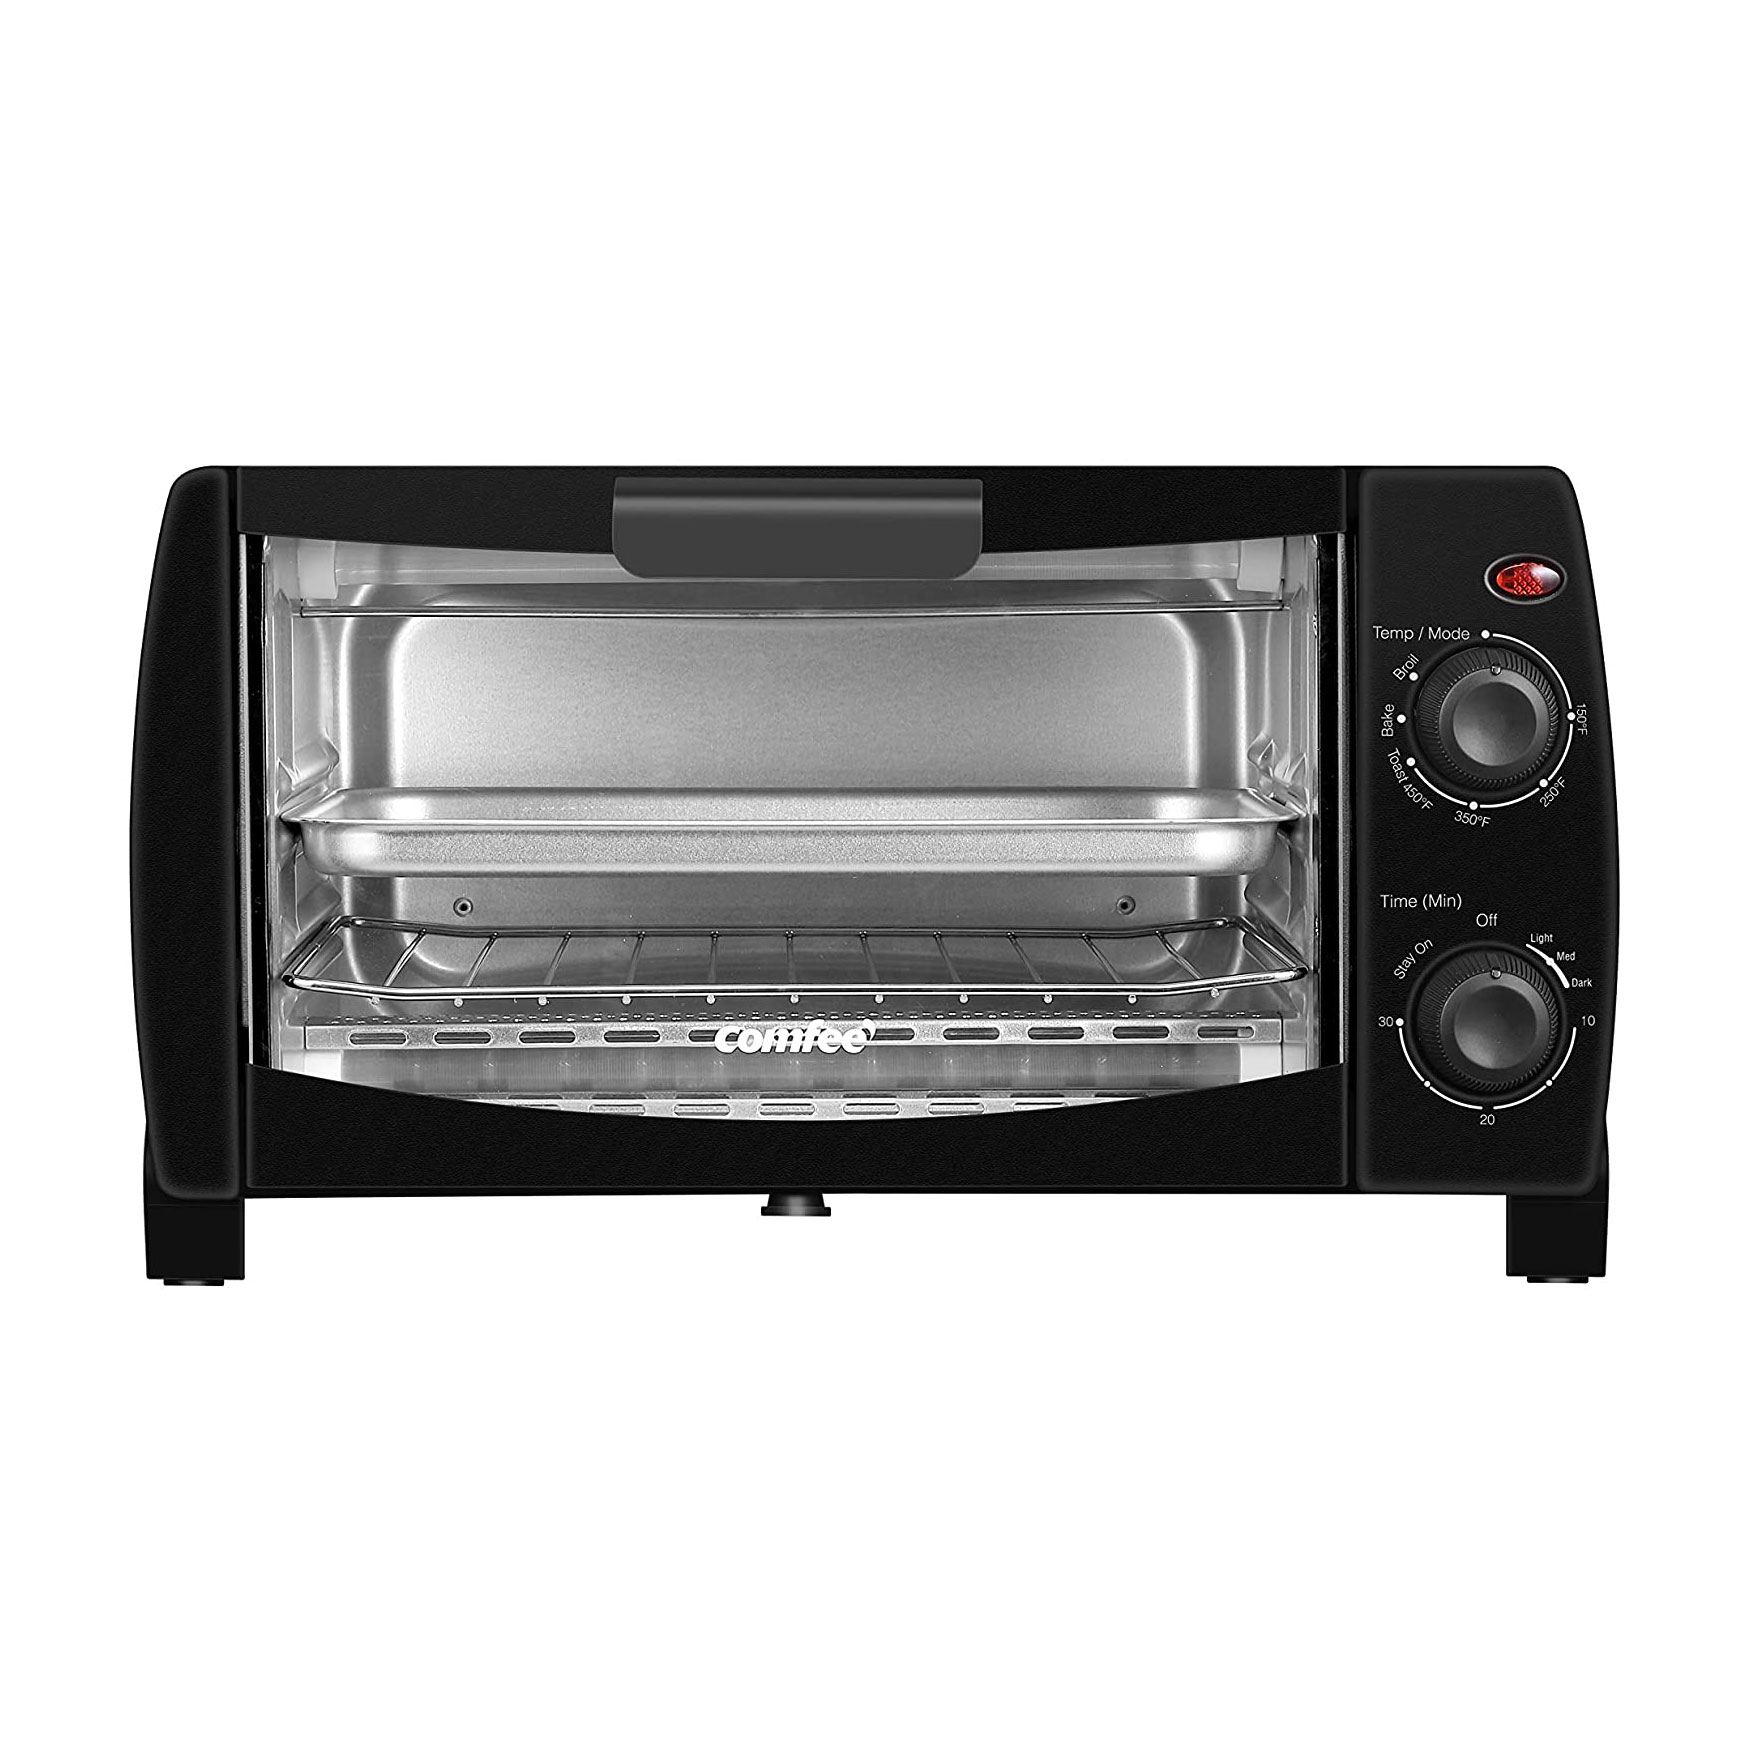 black tabletop toaster oven by comfee